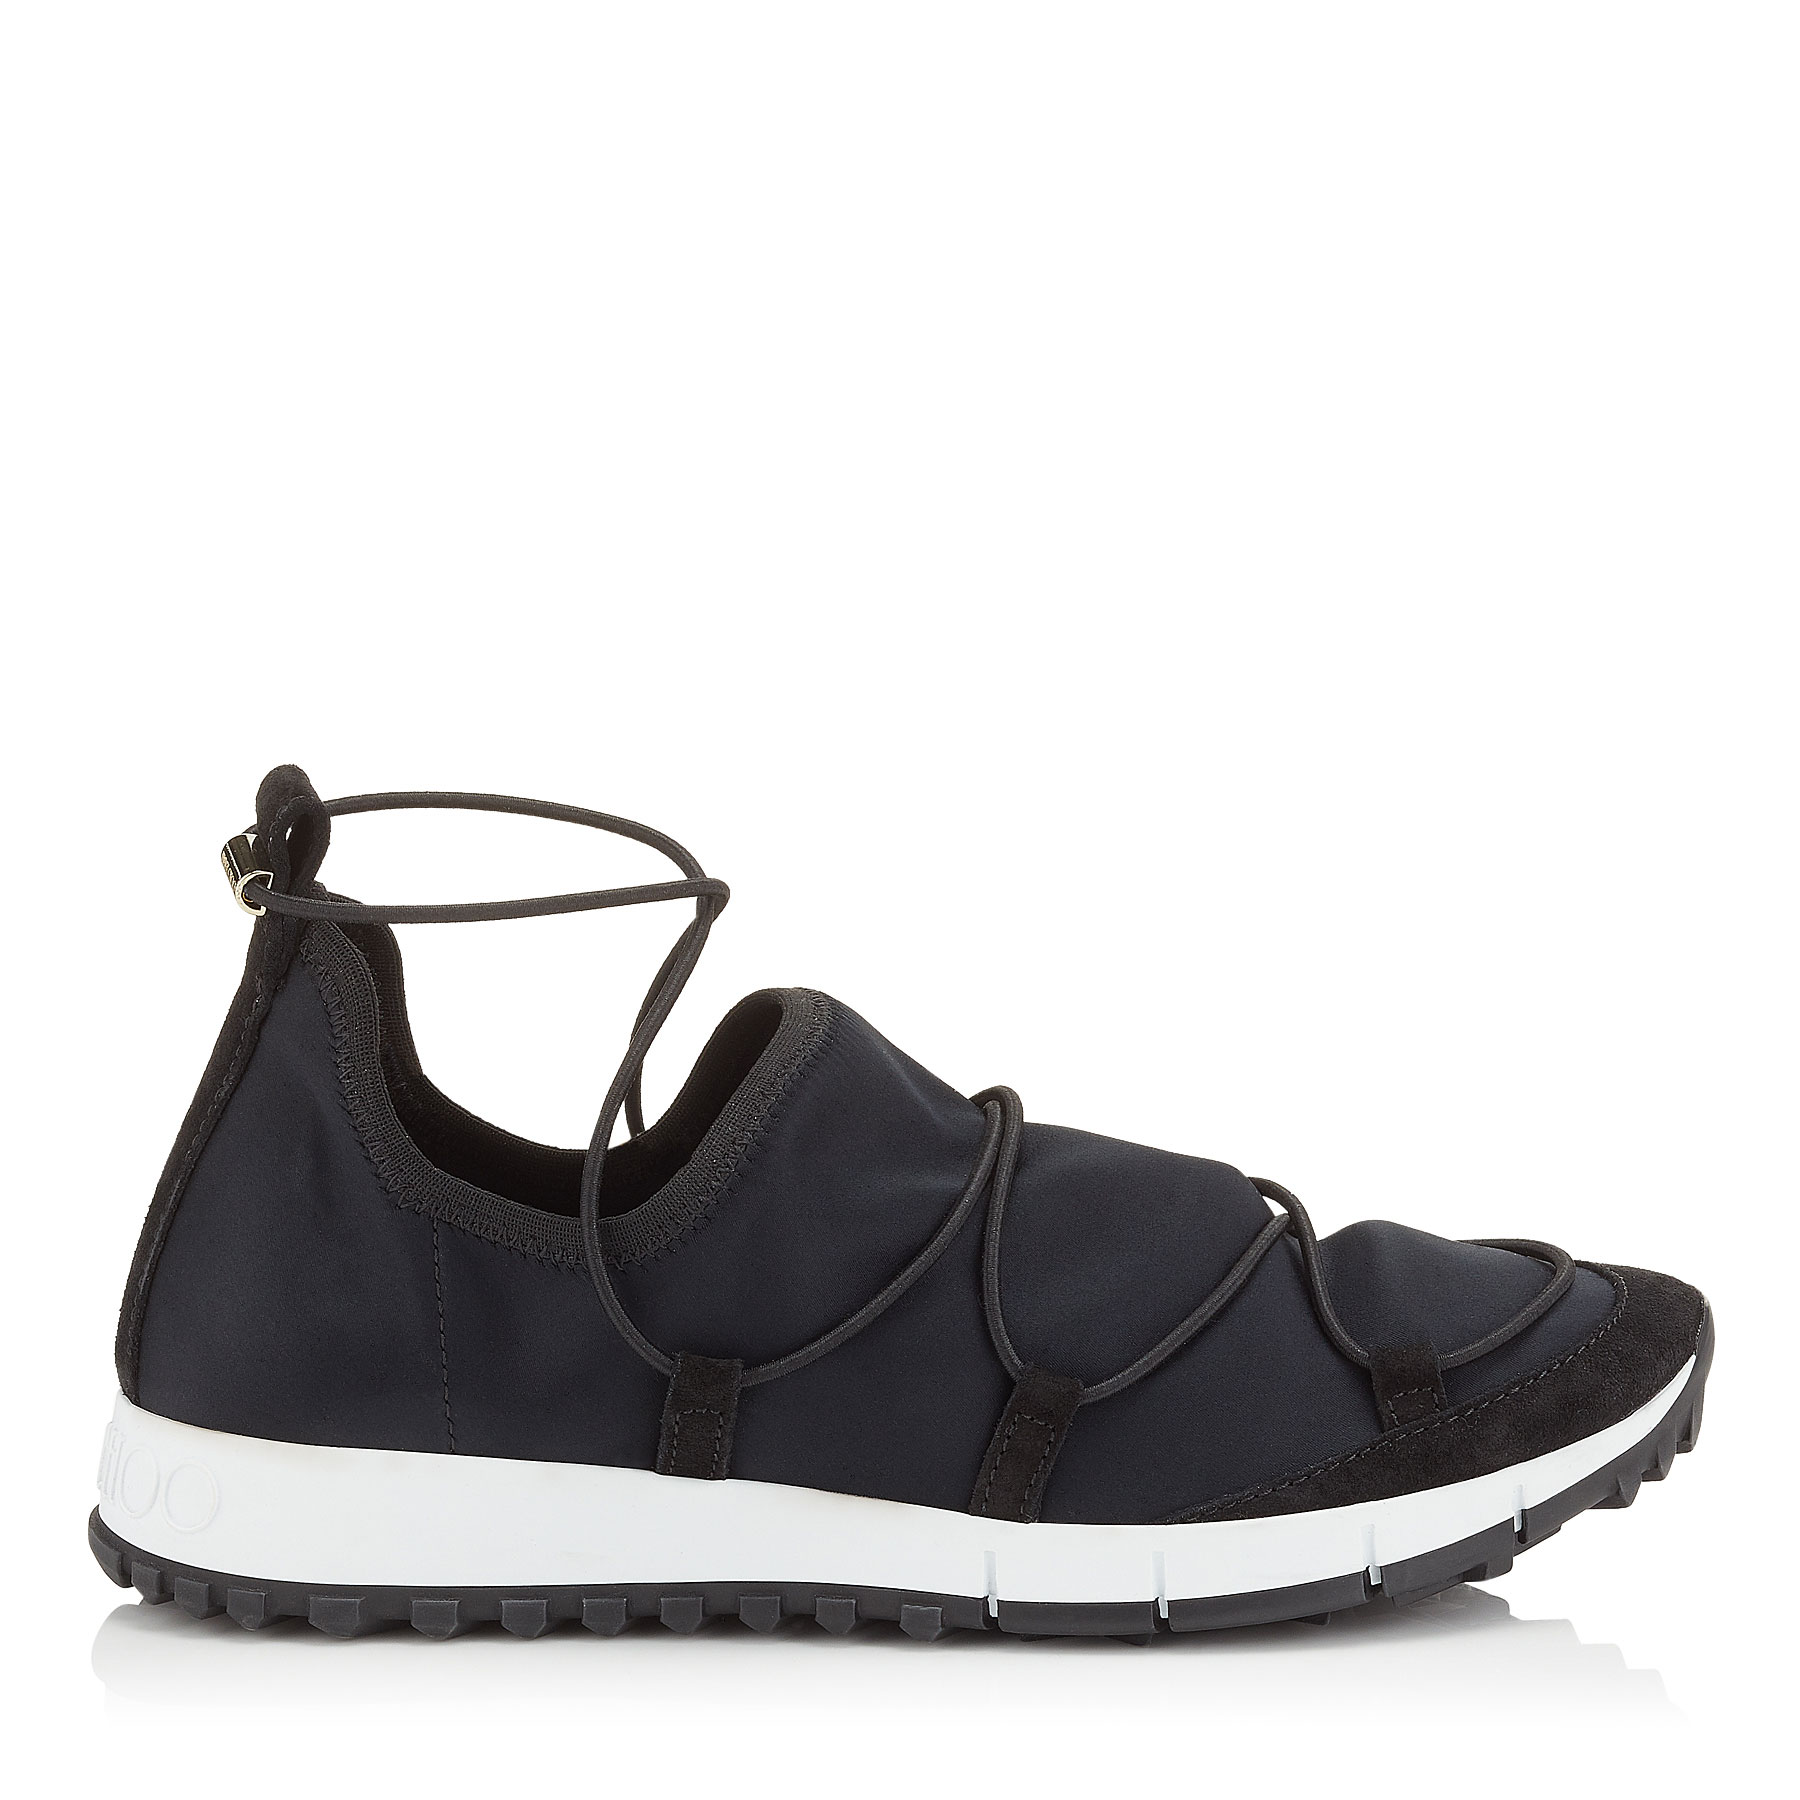 ANDREA Black Stretch Satin and Suede Trainers by Jimmy Choo